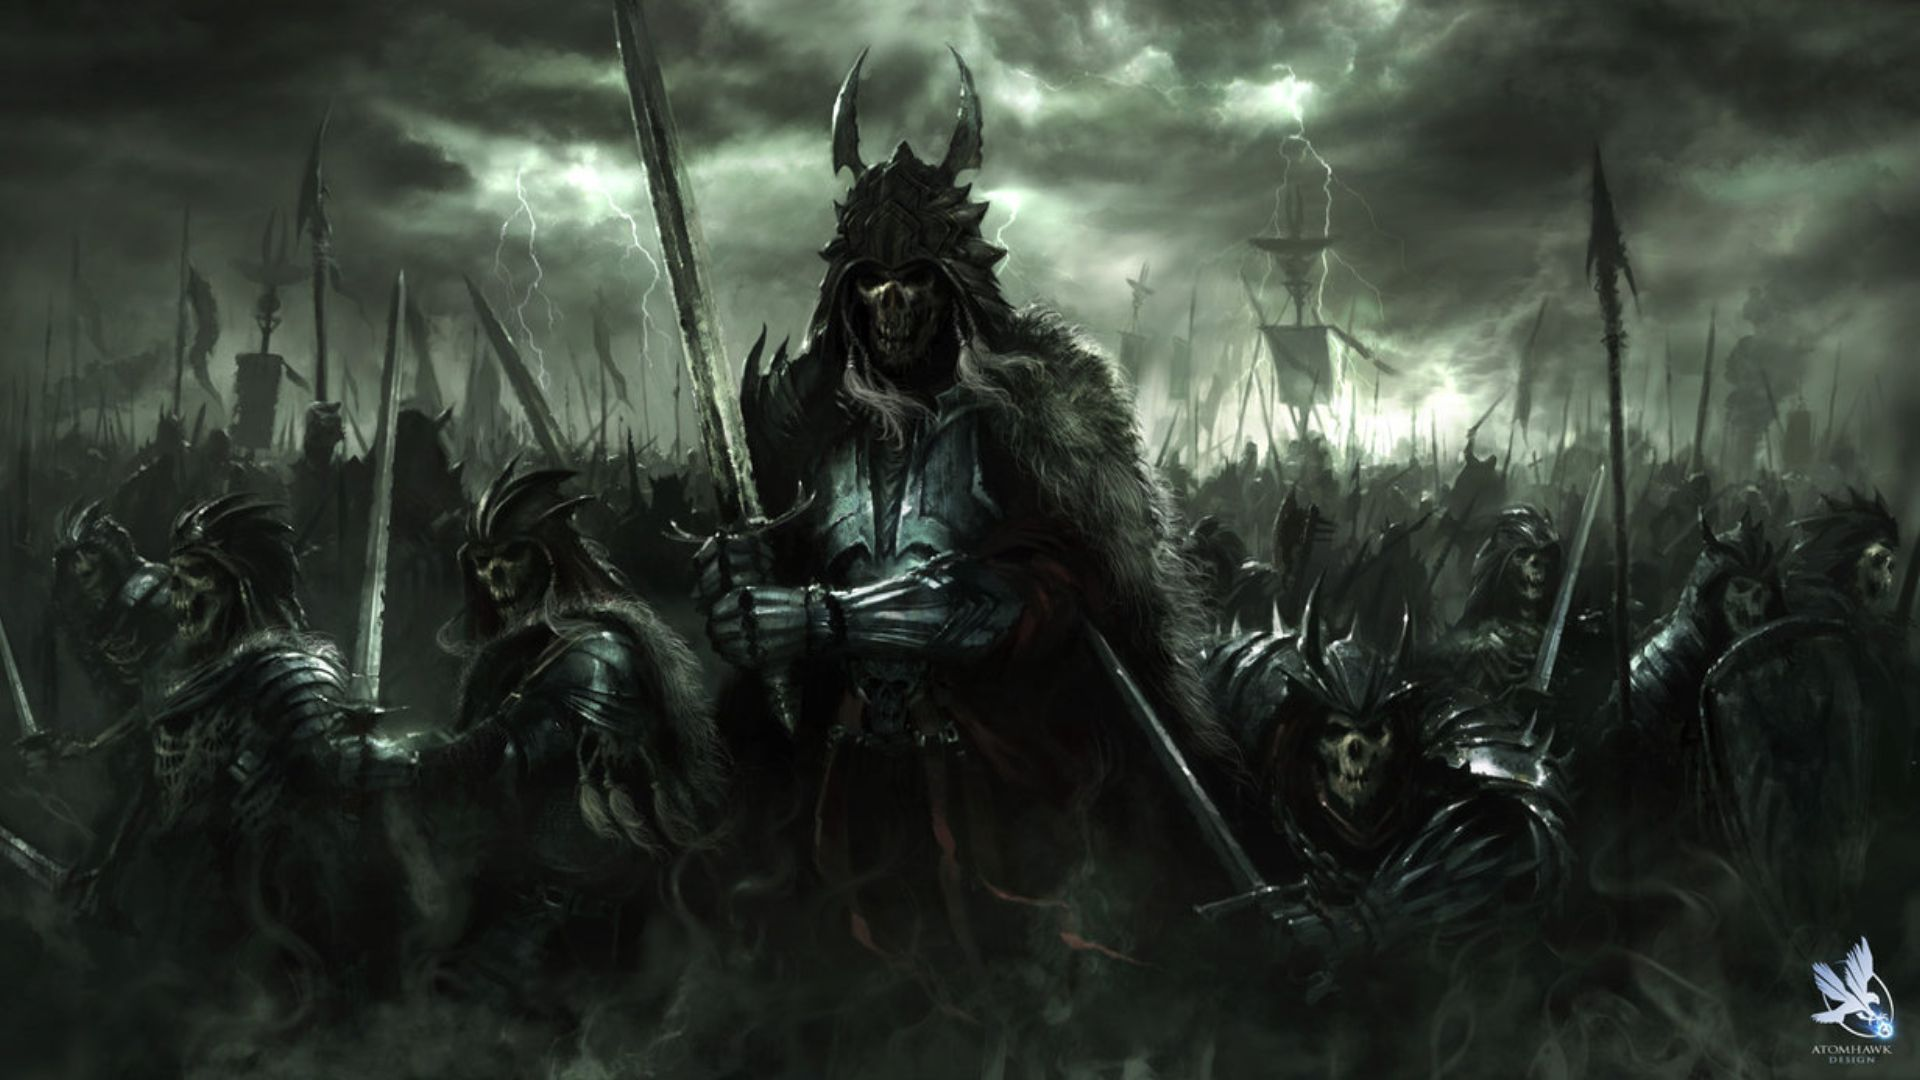 fantasy art dark horror demon skull warrior wepons army wallpaper 1920x1080